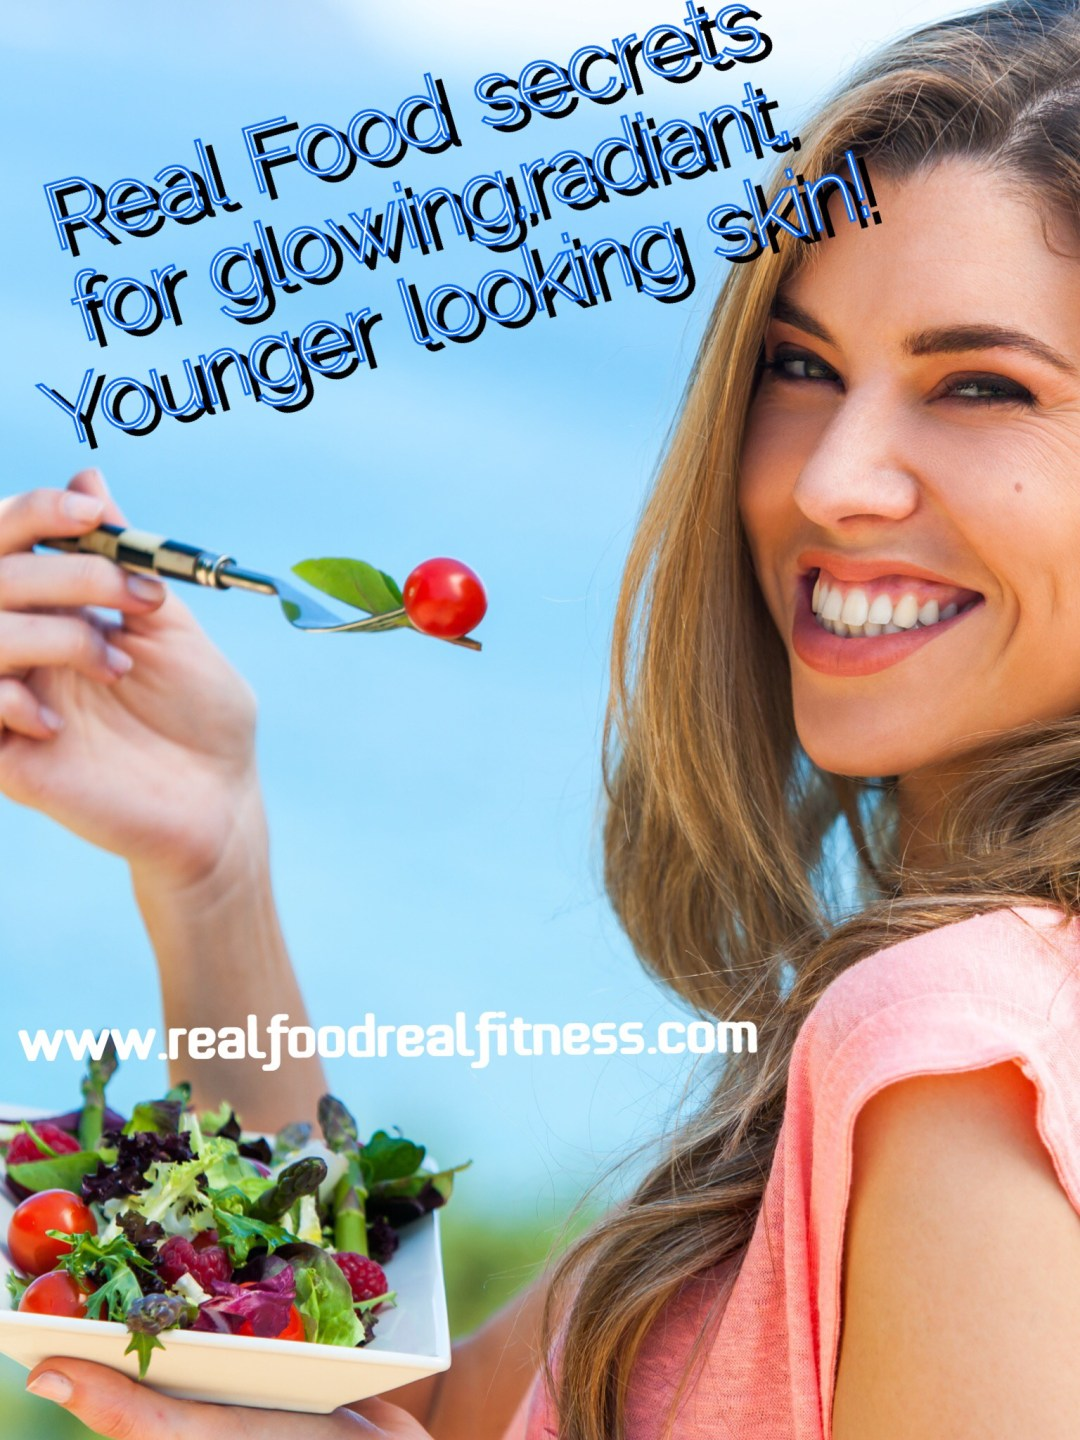 IMG_9406 REAL Food Beauty Secrets for Glowing, Radiant, Younger looking Skin!